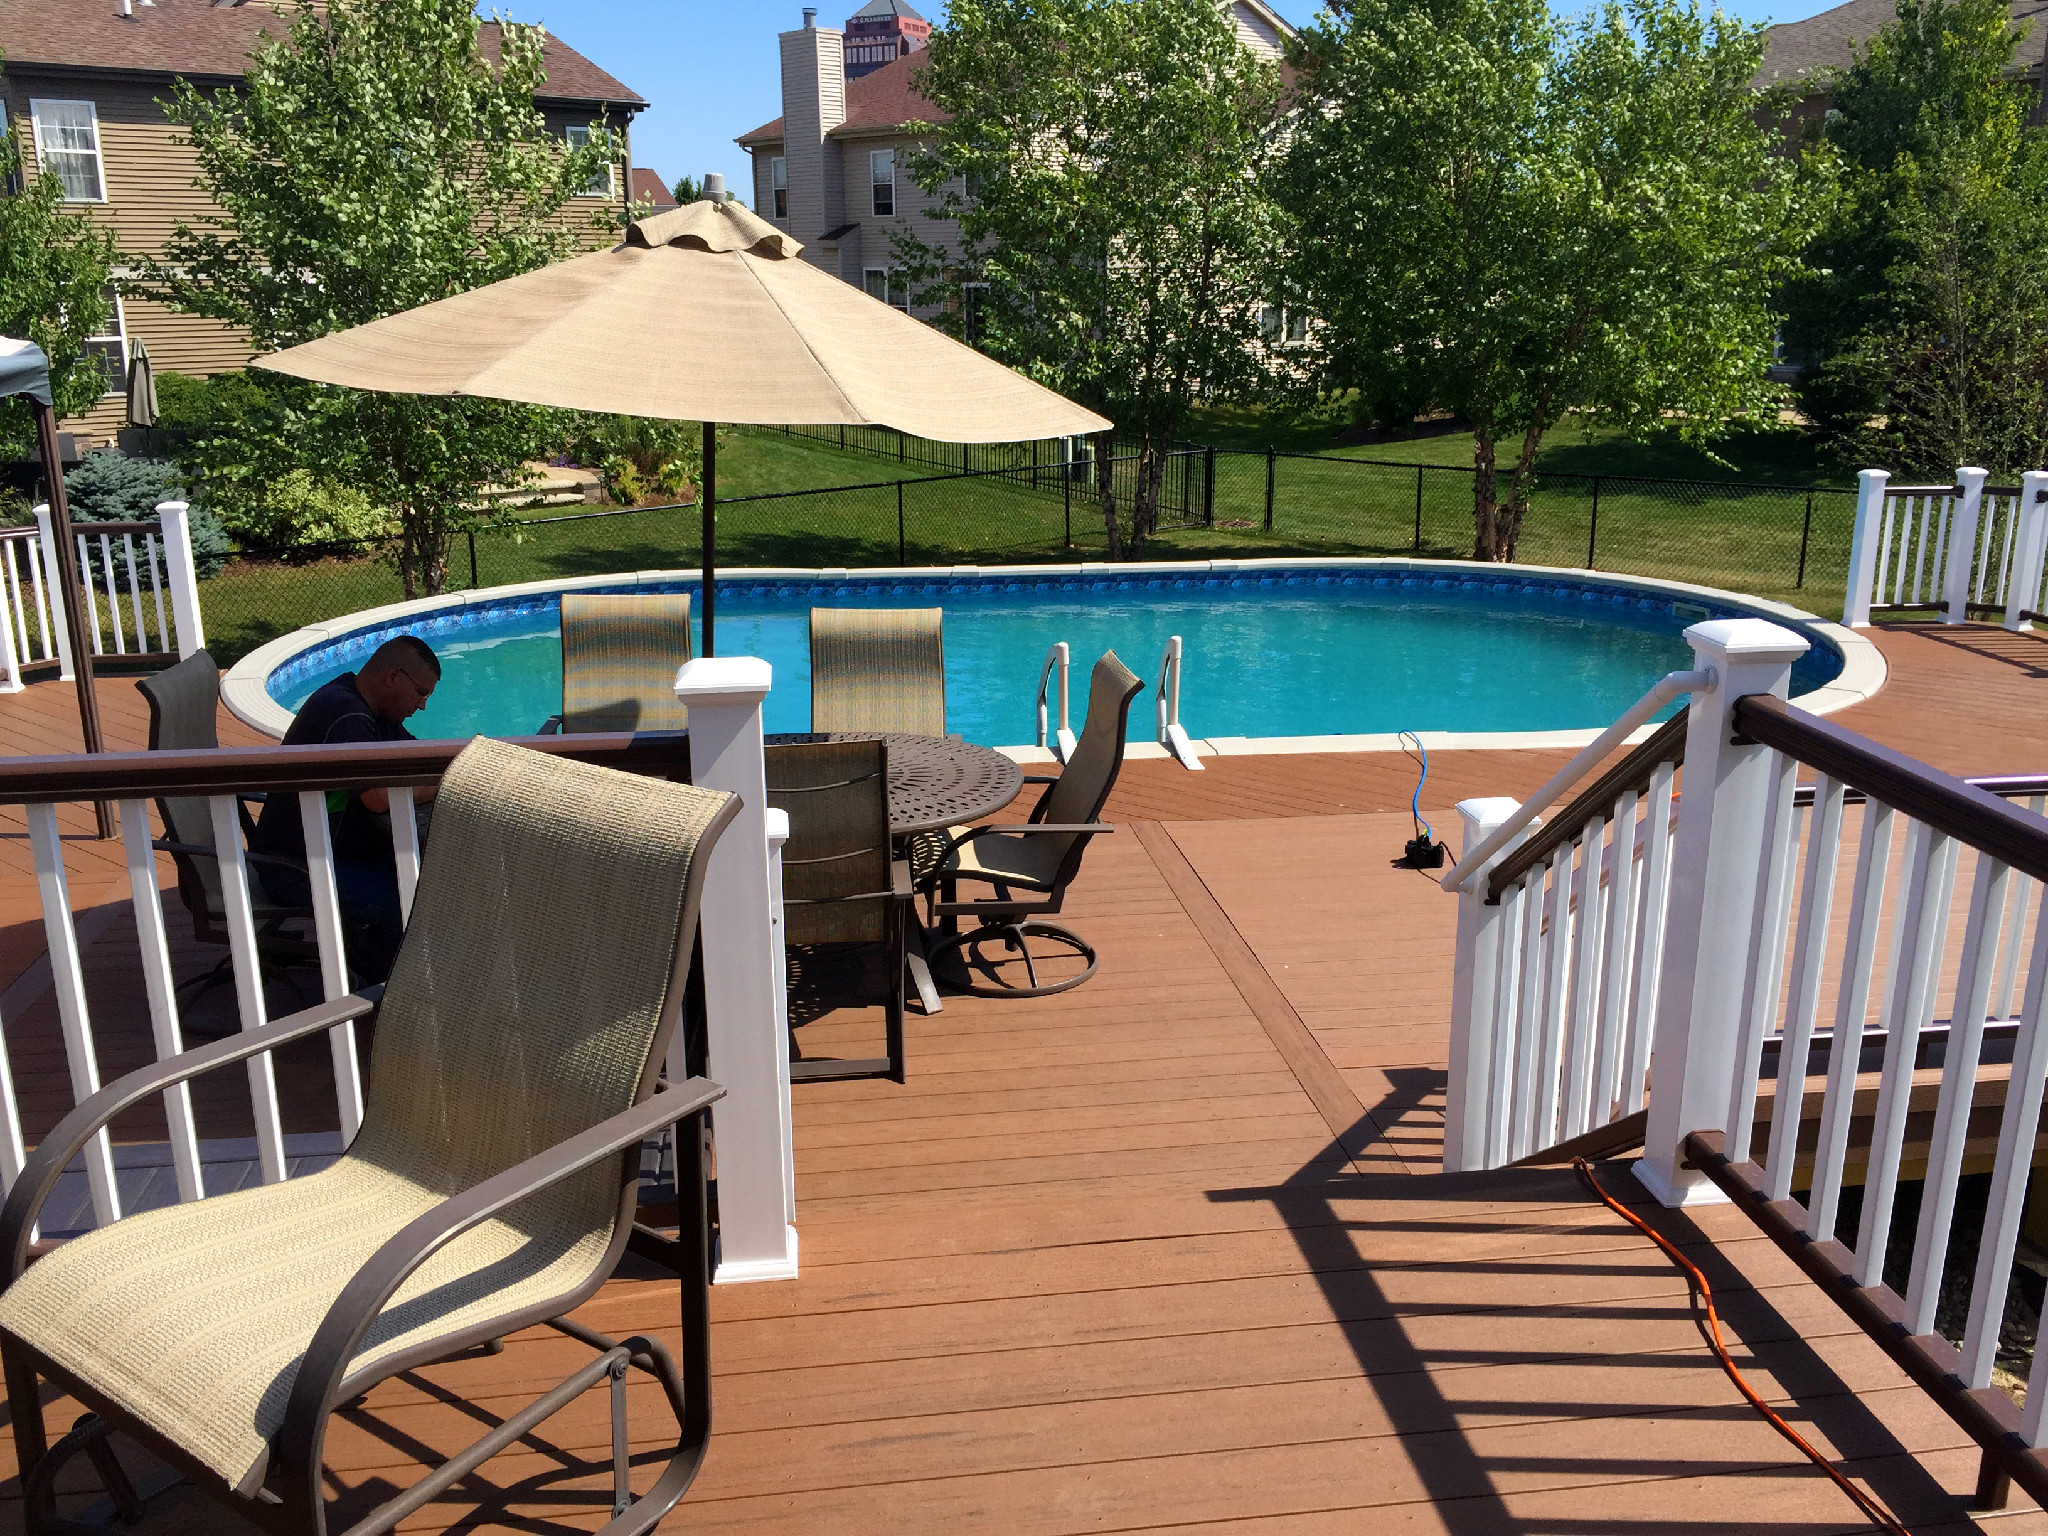 How Much Does a Chicagoland Pool Deck Cost